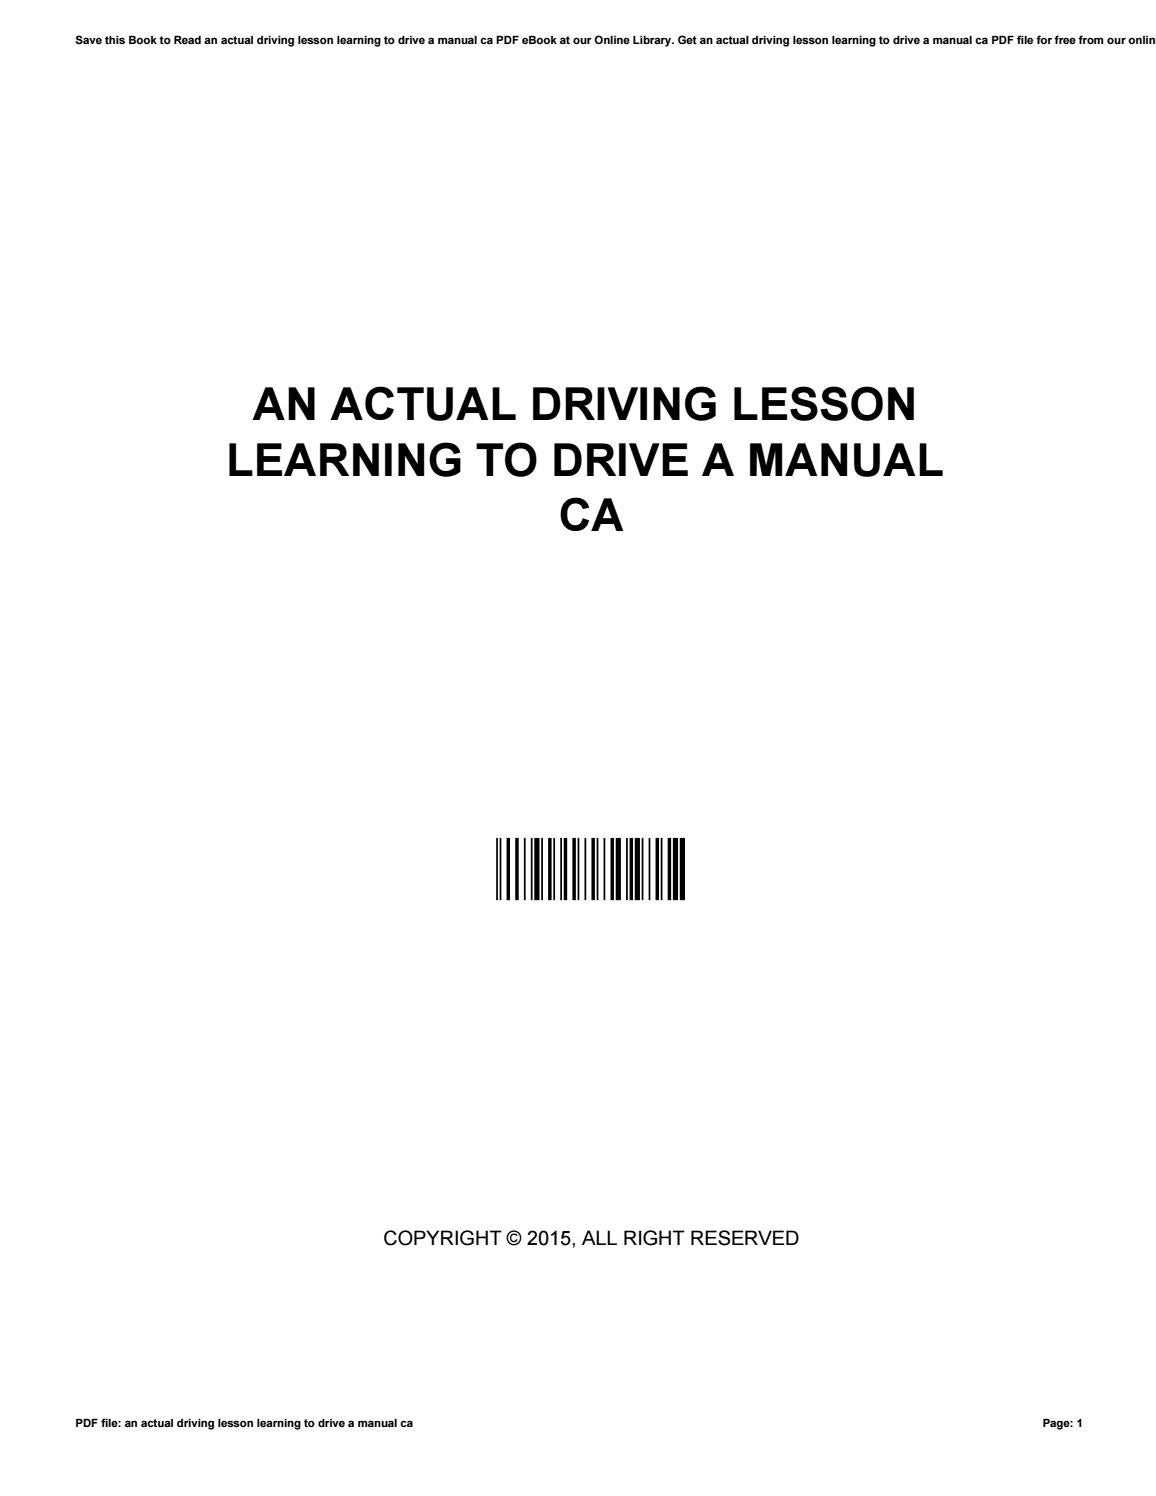 How-to-drive-a-manual-car. Pdf | clutch | driving.